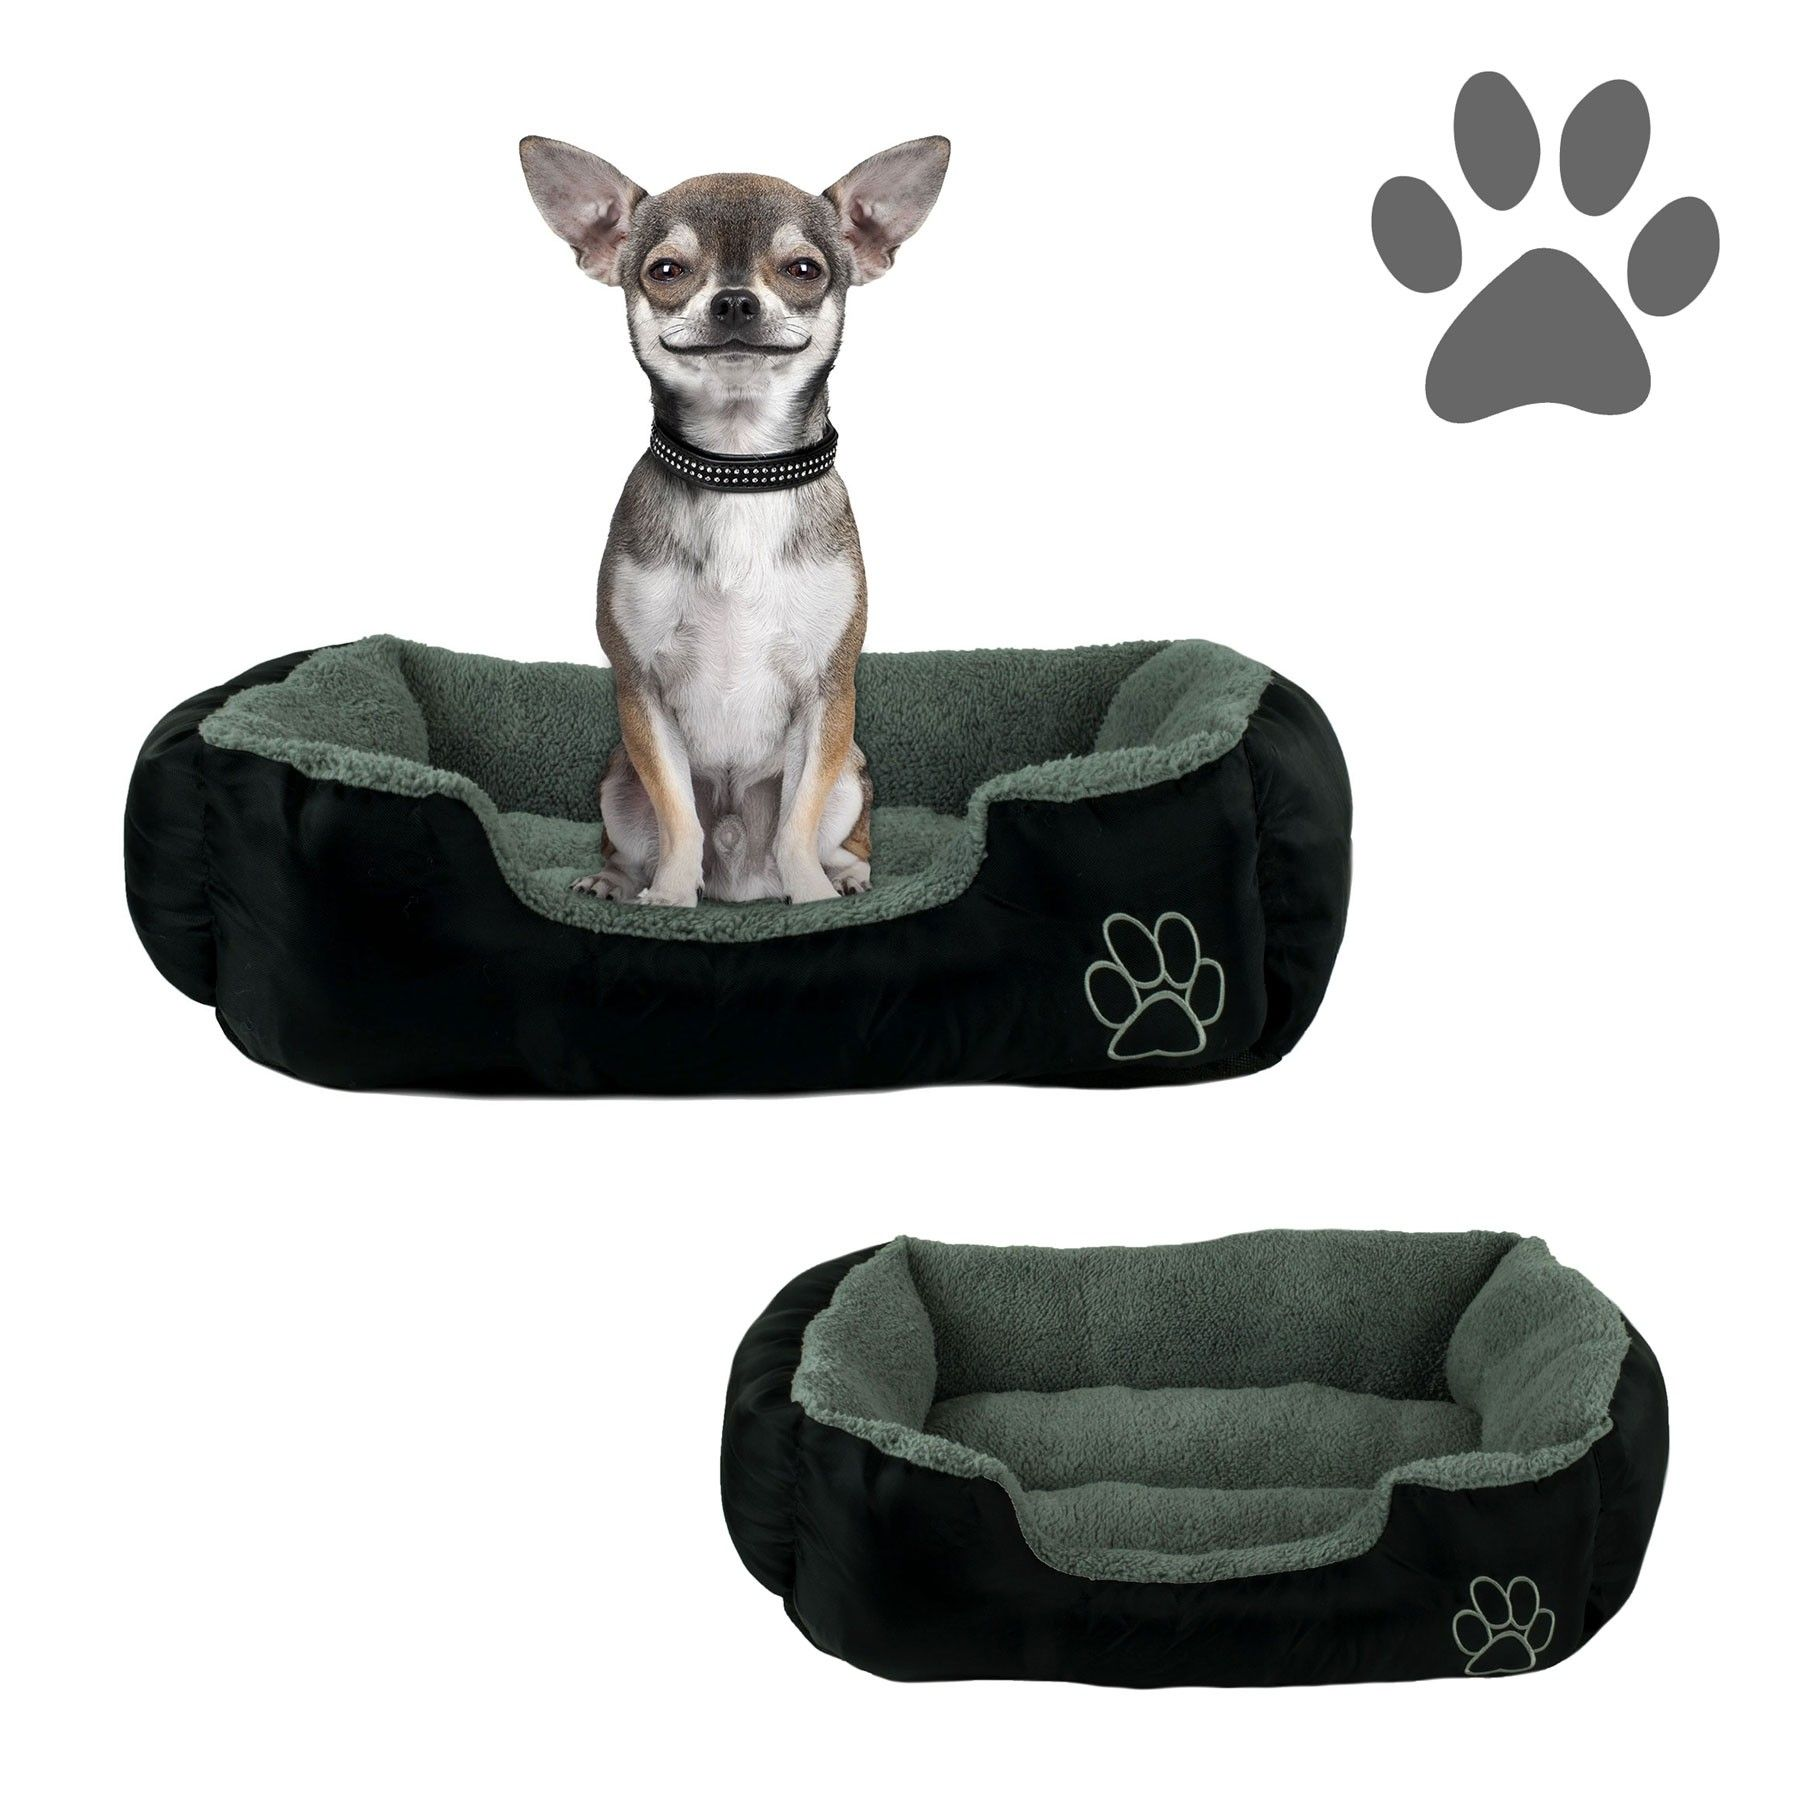 Pamper Your Pet With This Plush Cuddler Pet Bed From Beatrice In Black And Gray The Outer Dimensions Of This Bed Are 22 X 18 Inches M Pets Small Dogs Pet Beds